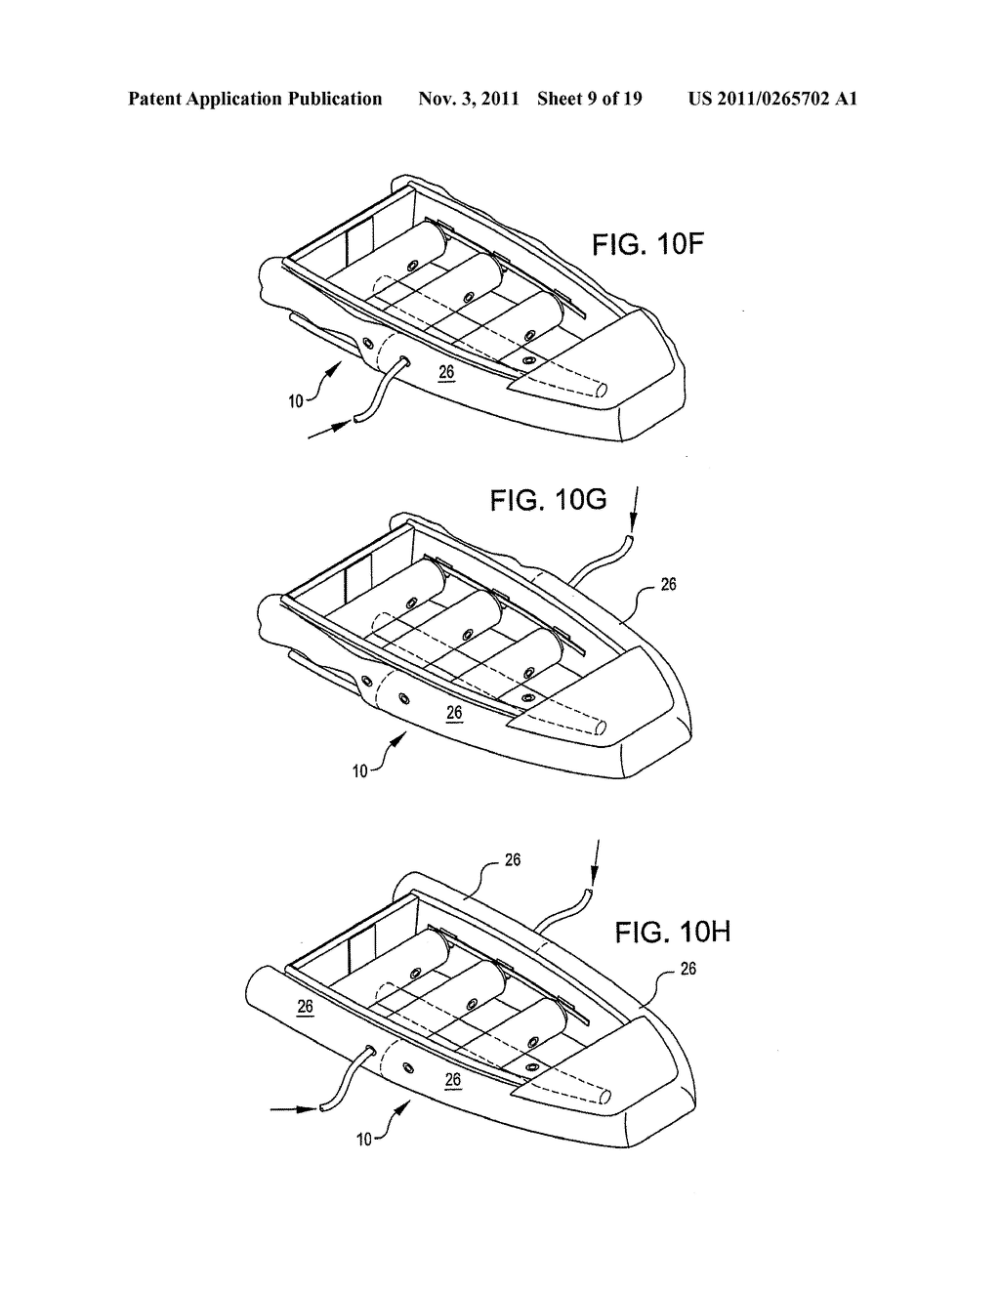 medium resolution of folding transom for a collapsible boat diagram schematic and image 10